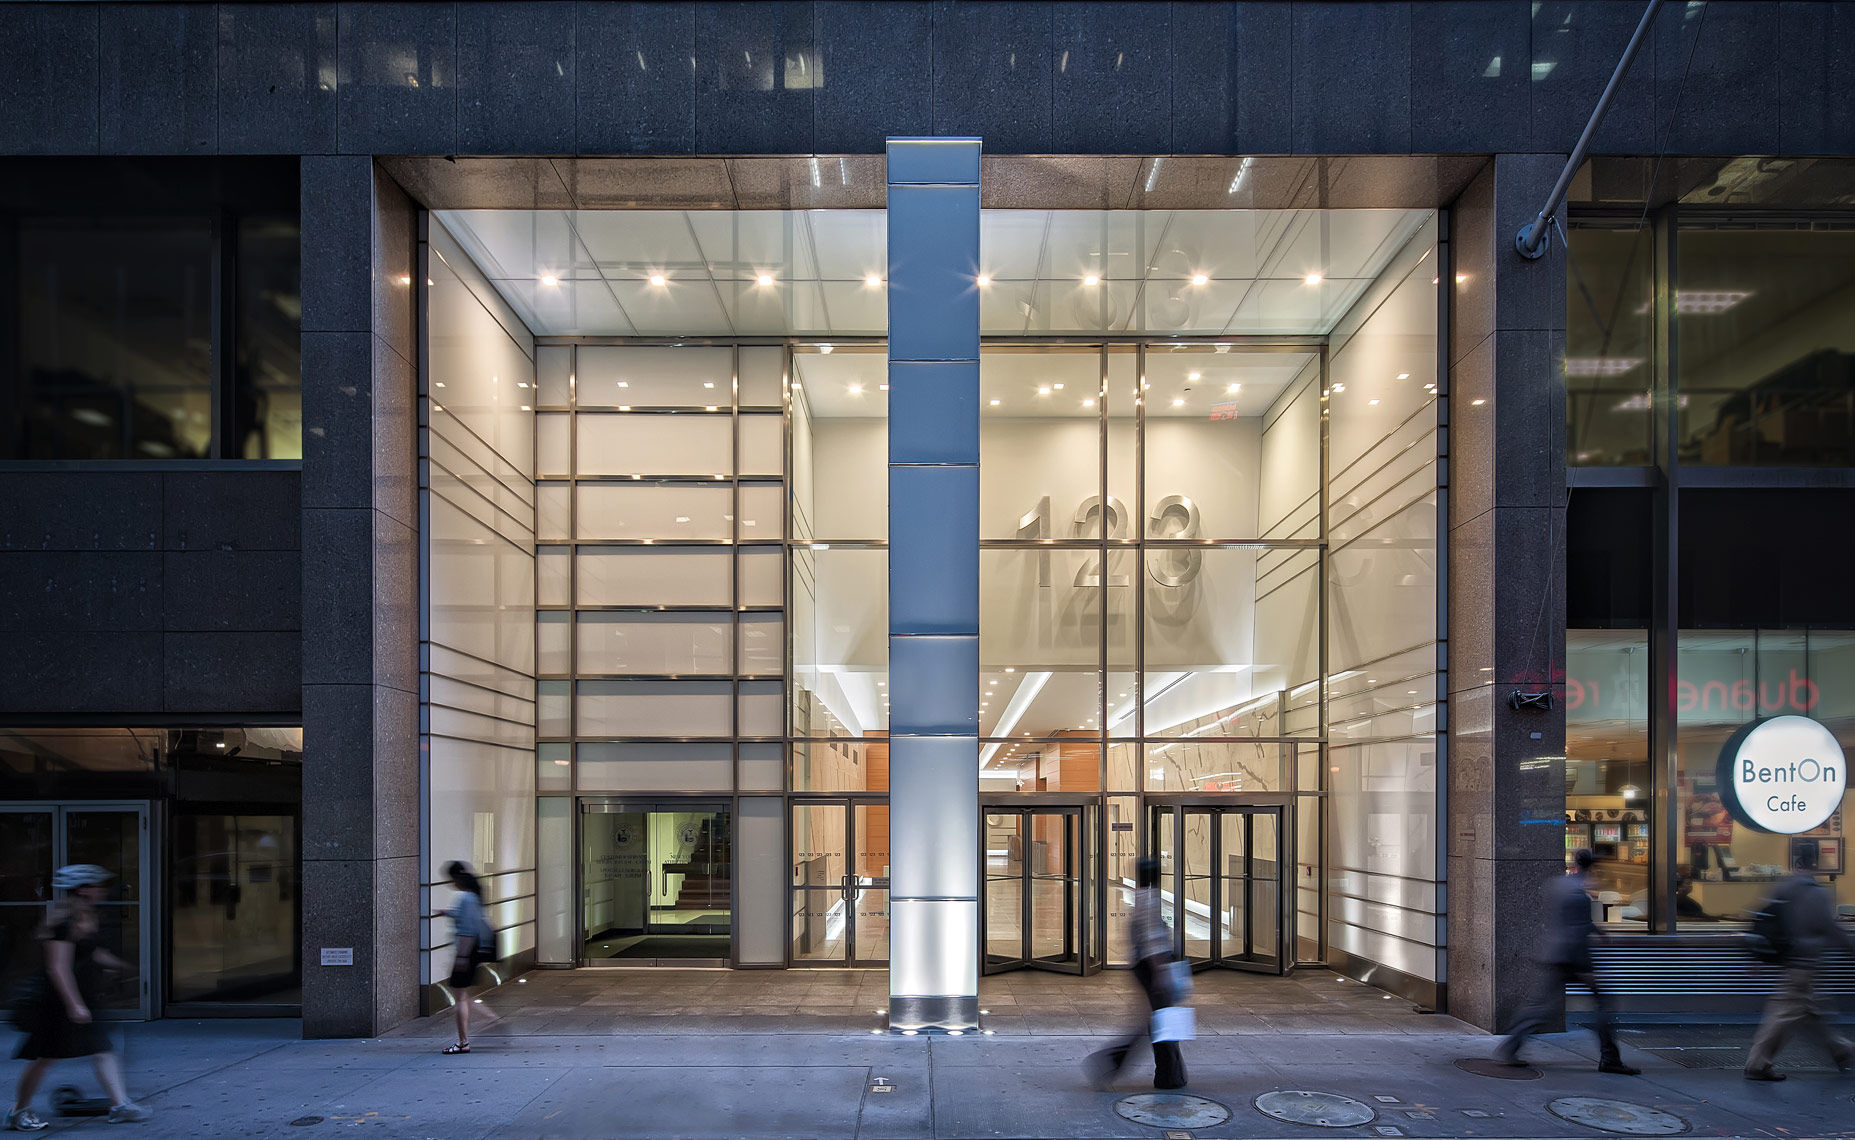 The hustle of rush hour in front of 123 William st NYC. Corporate interior photographer